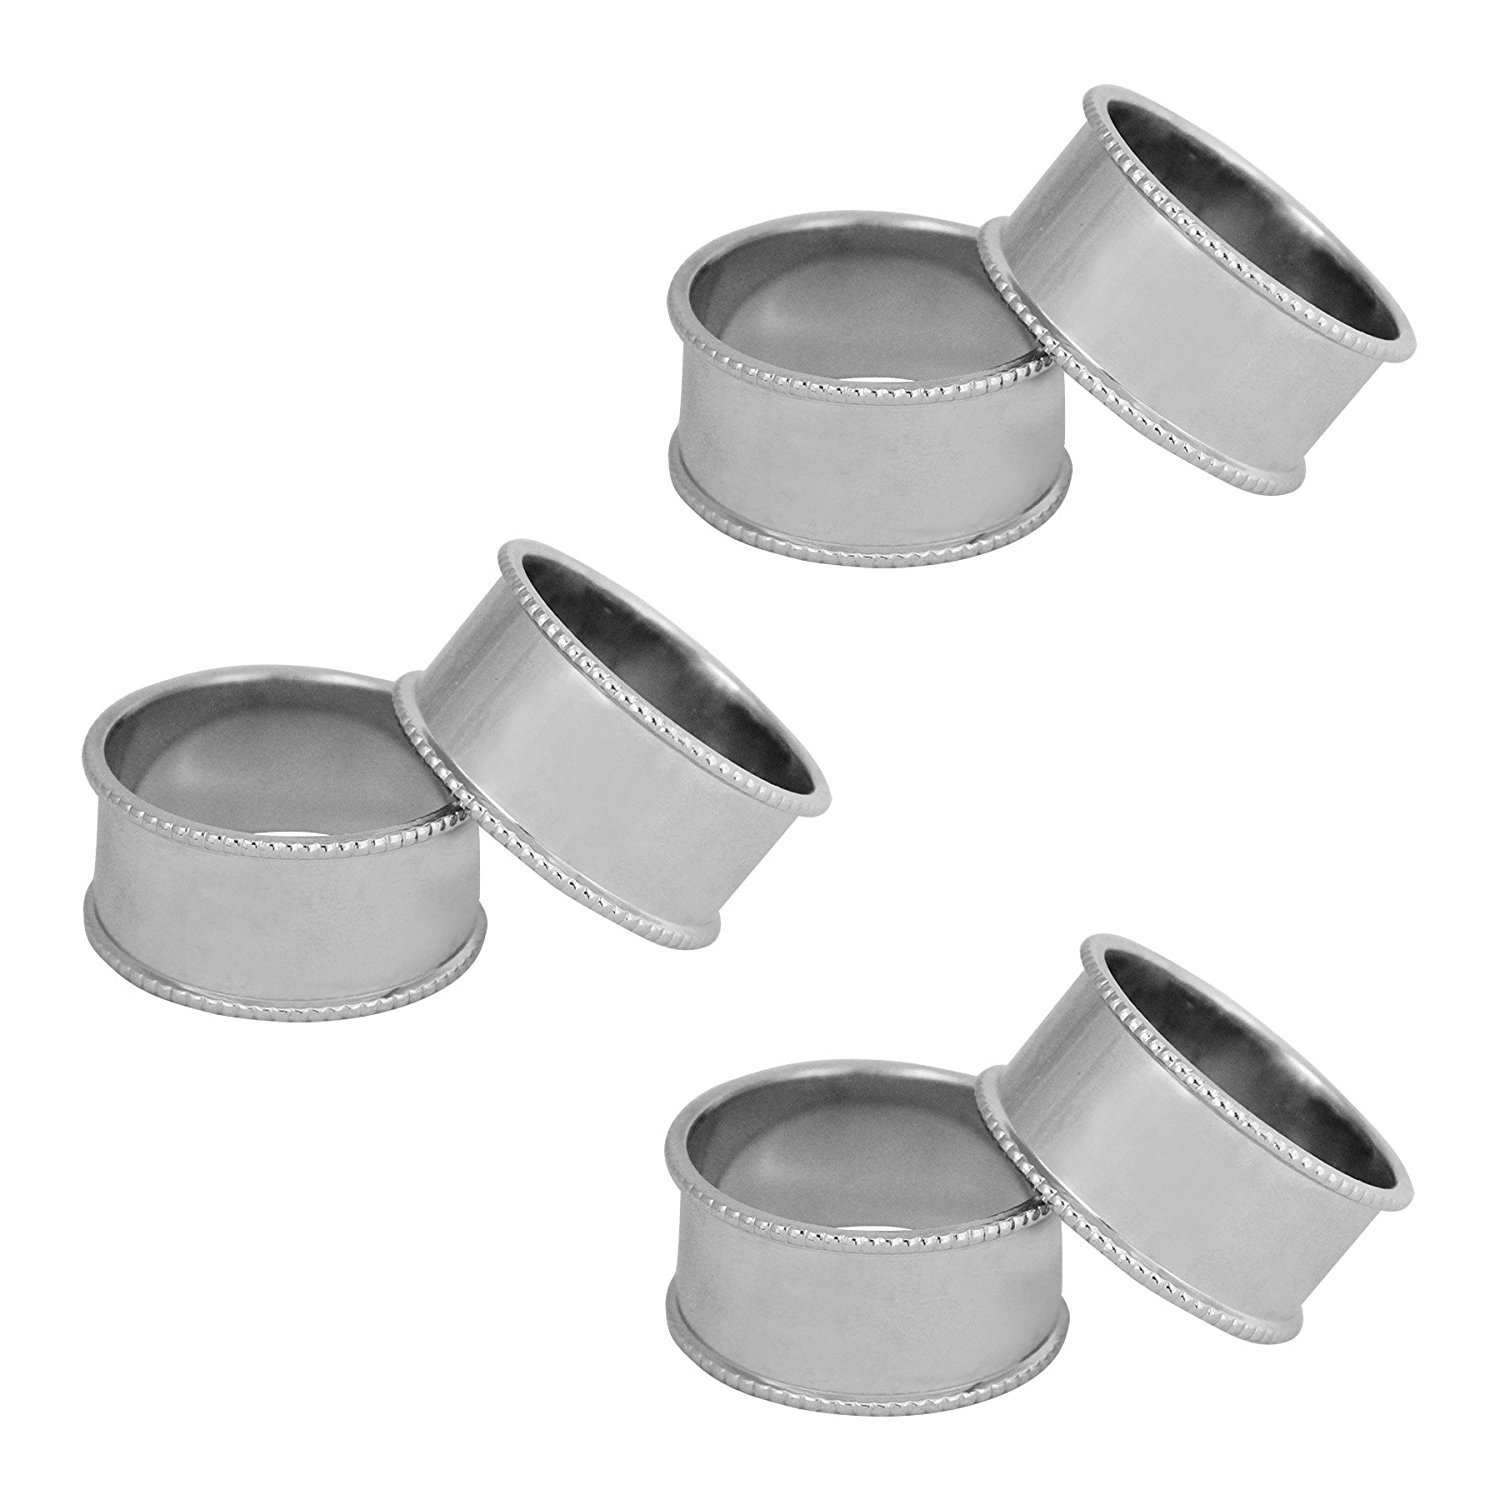 ITOS365 Handmade Napkin Rings Holder for Dinning Table Parties Everyday, Set of 6   B01LYFFG4Z